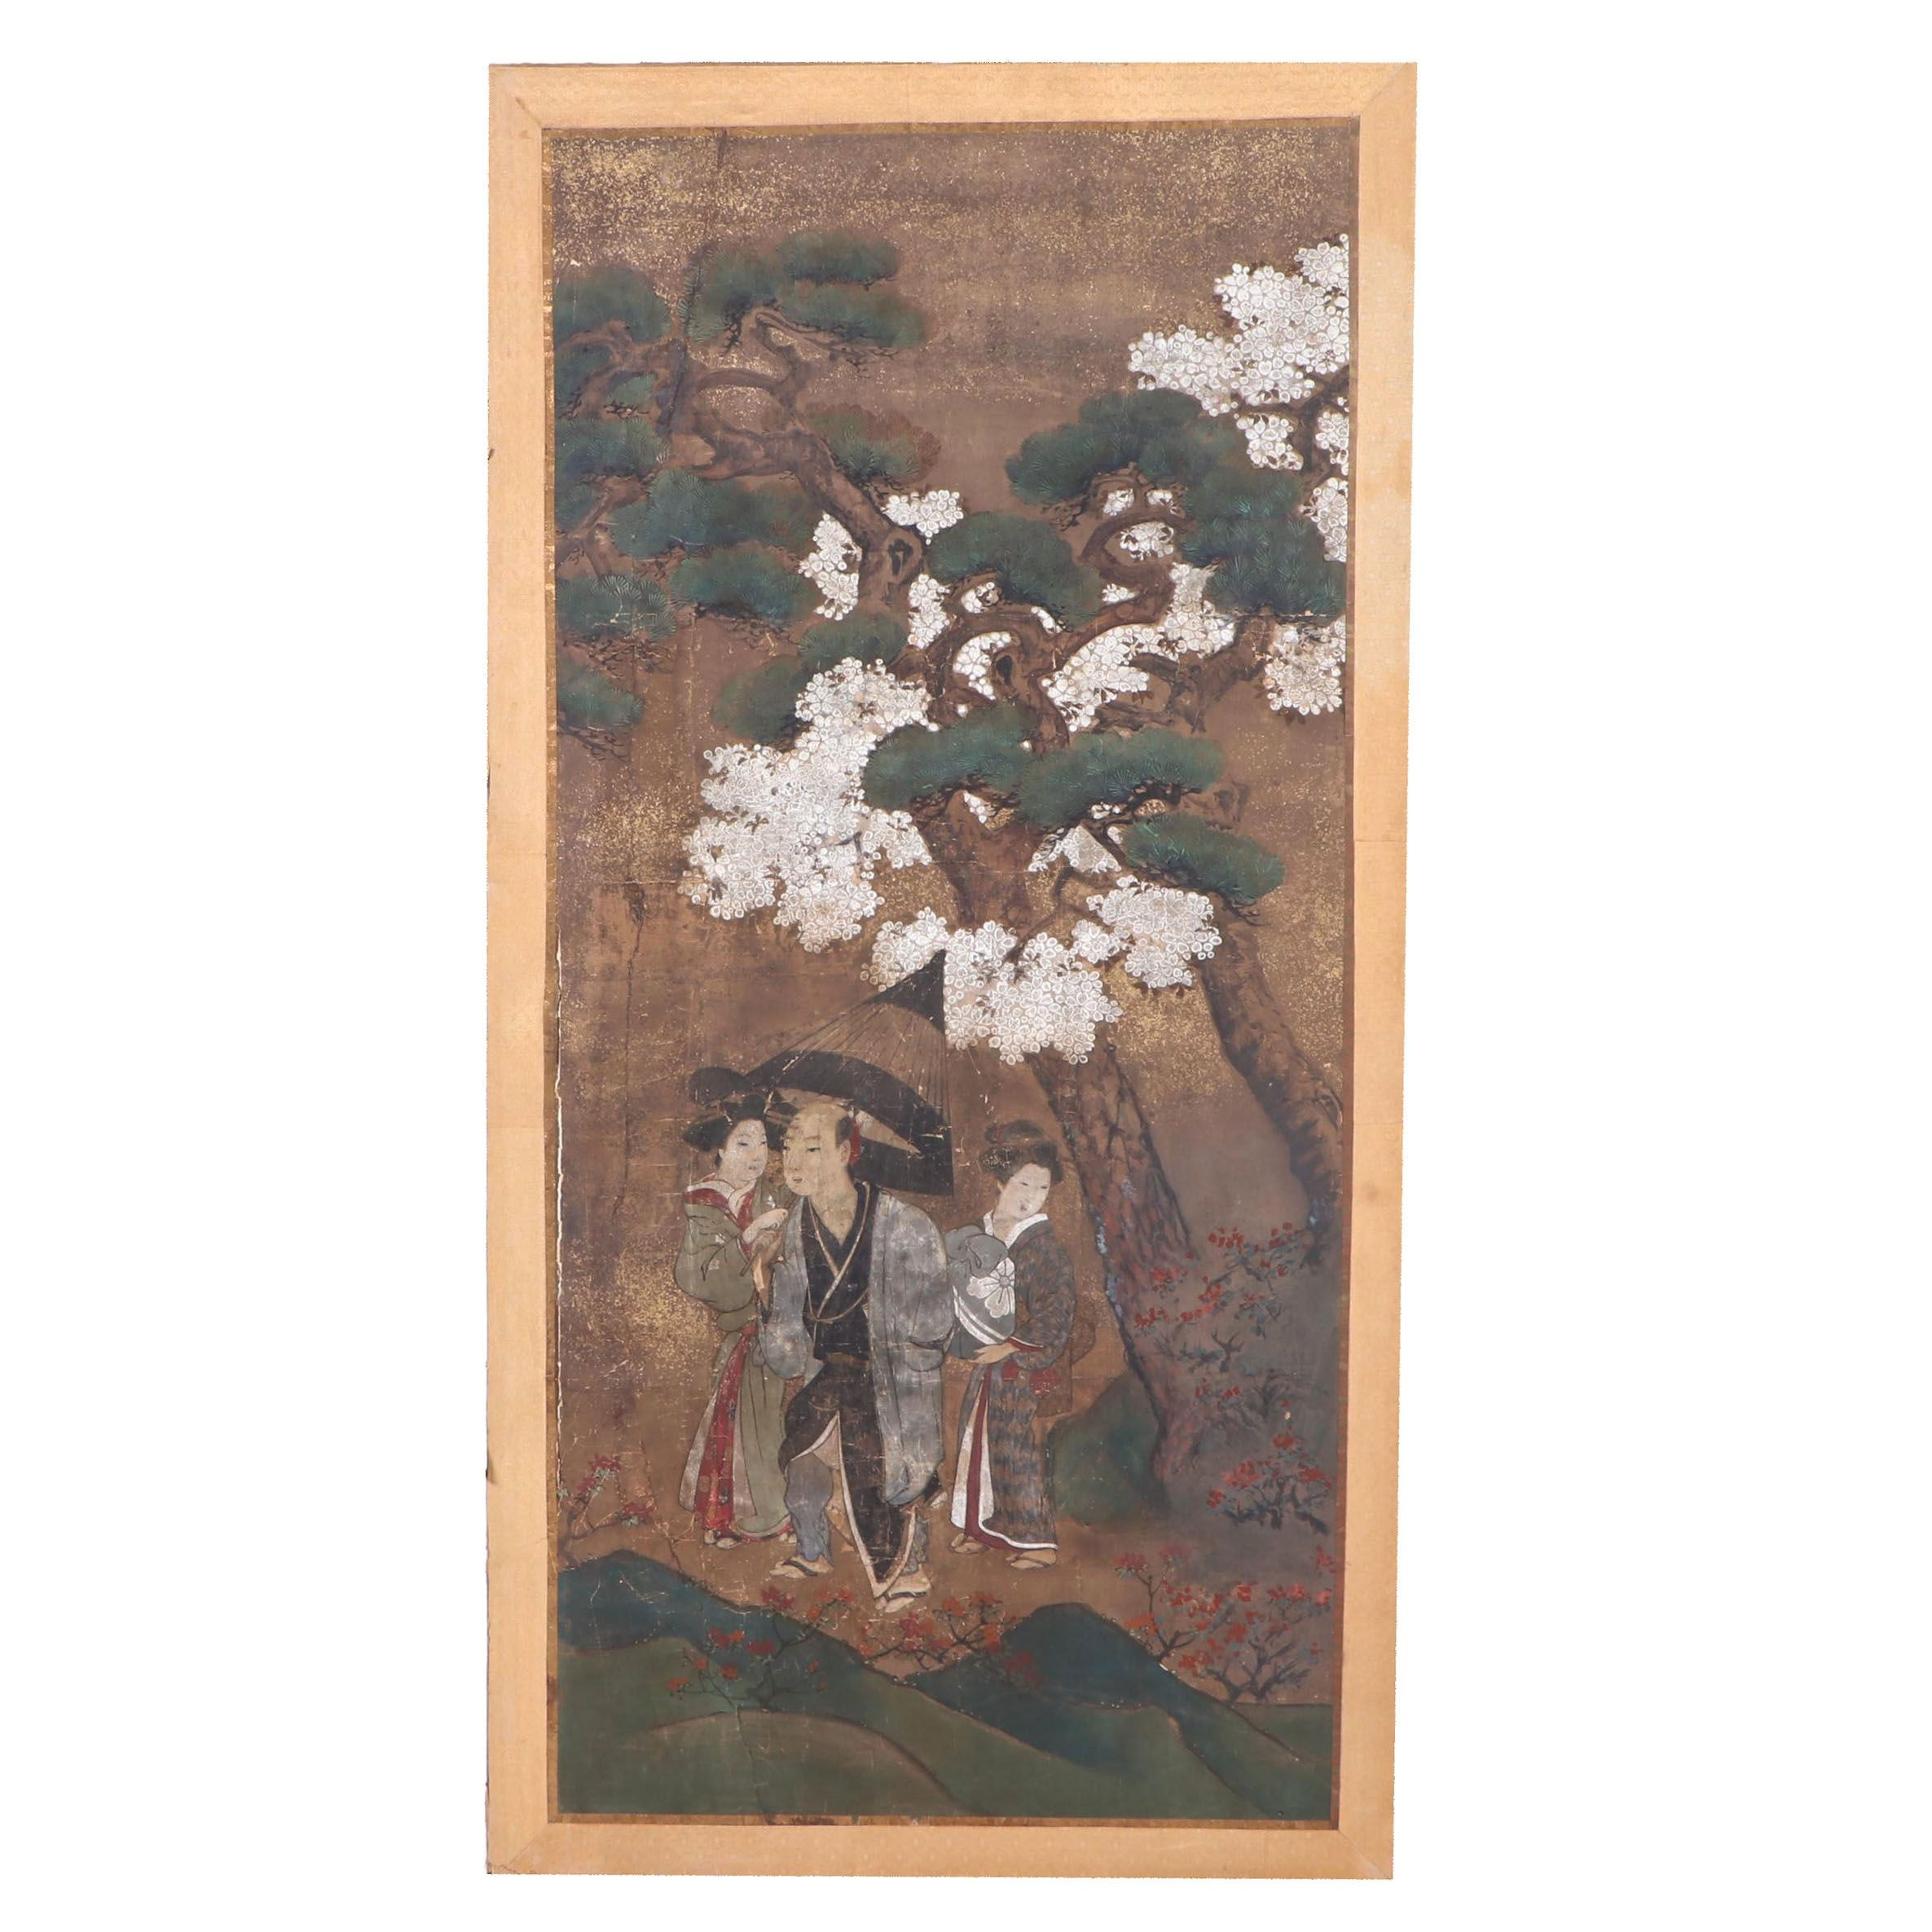 Japanese Gouache Painting of Figures Among Sakura and Pines